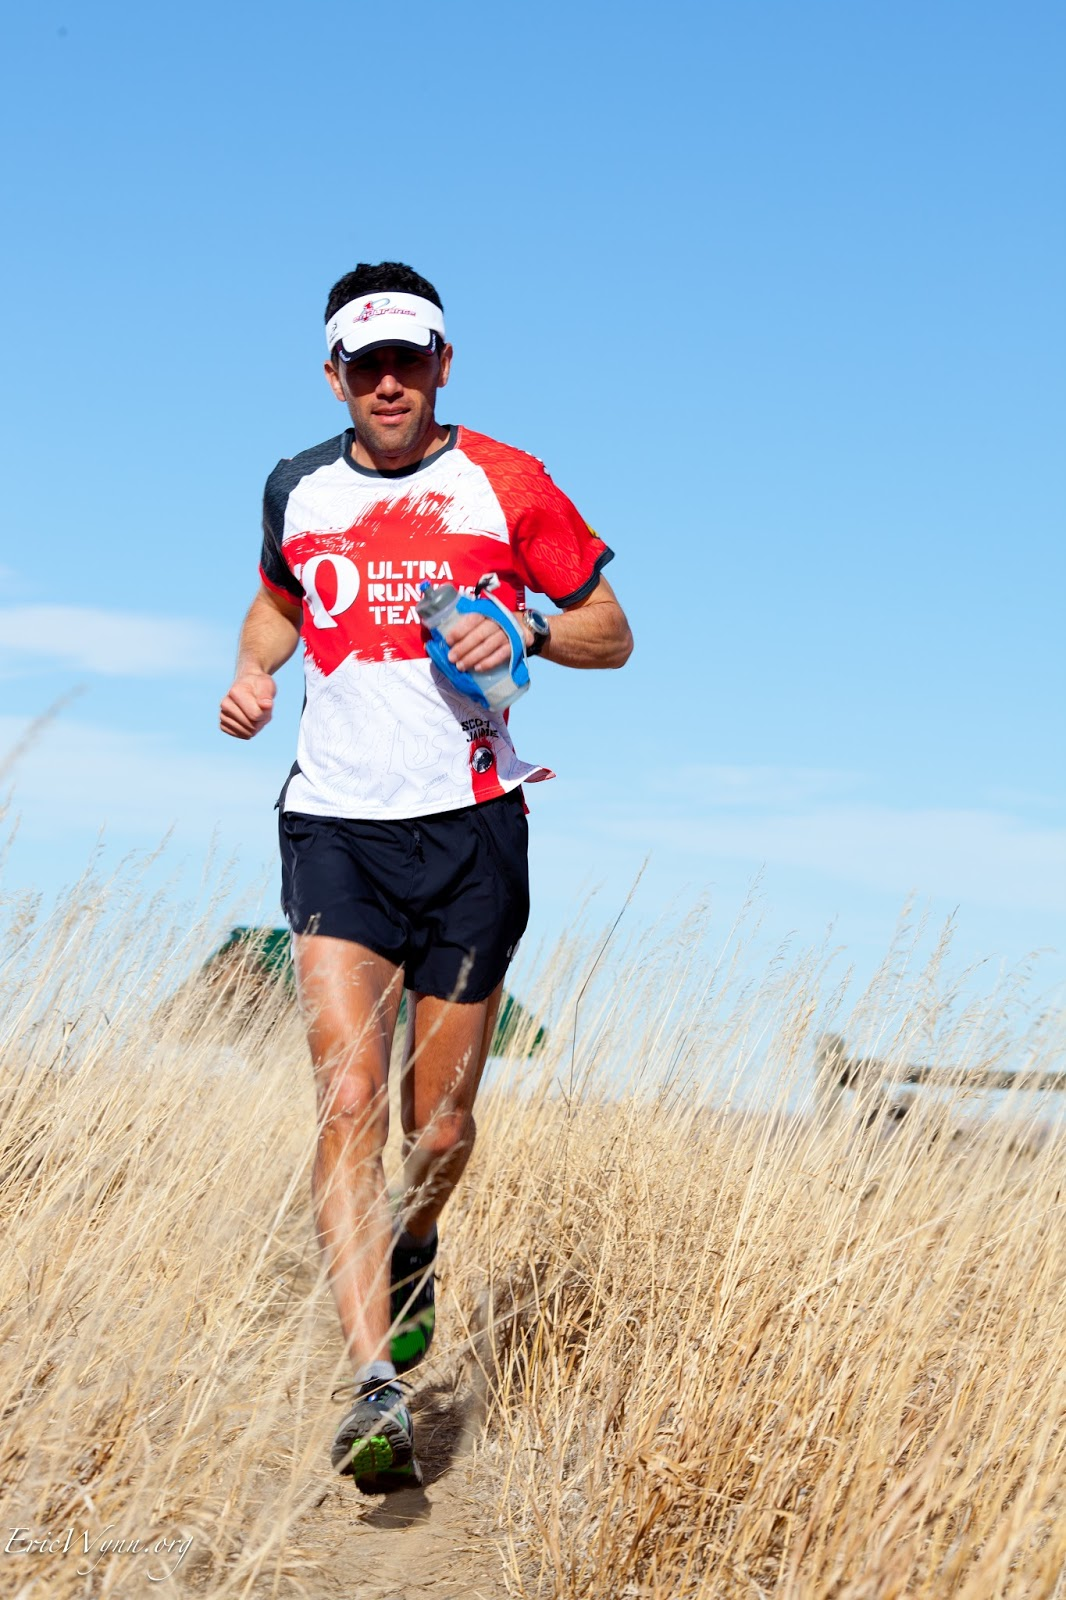 Total Athletic Therapy: What Do Ultra-Distance Runners Eat?